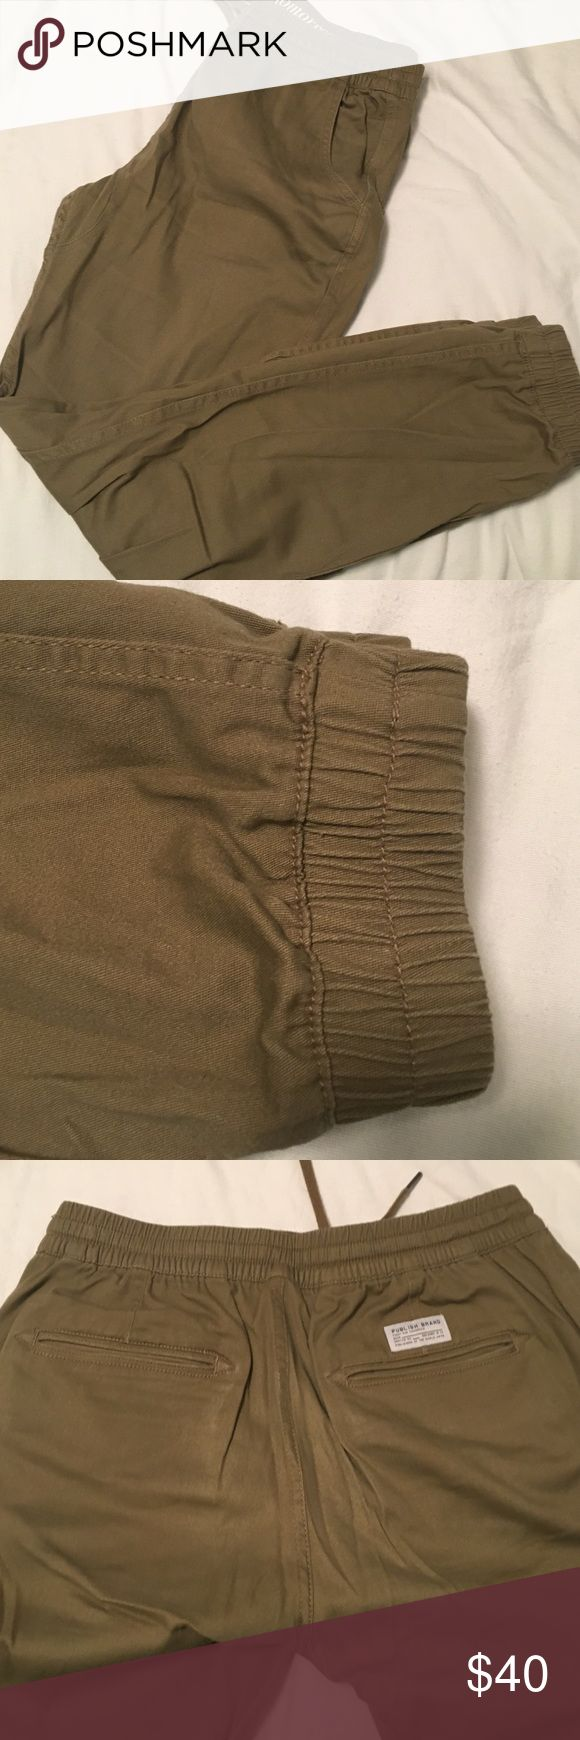 Men's Publish jogger pants in khaki green Men's Publish from Urban Outfitters jogger pants. Elastic at waist and ankles. Size 36. Khaki green color. Pockets on front and back. Publish Pants Sweatpants & Joggers